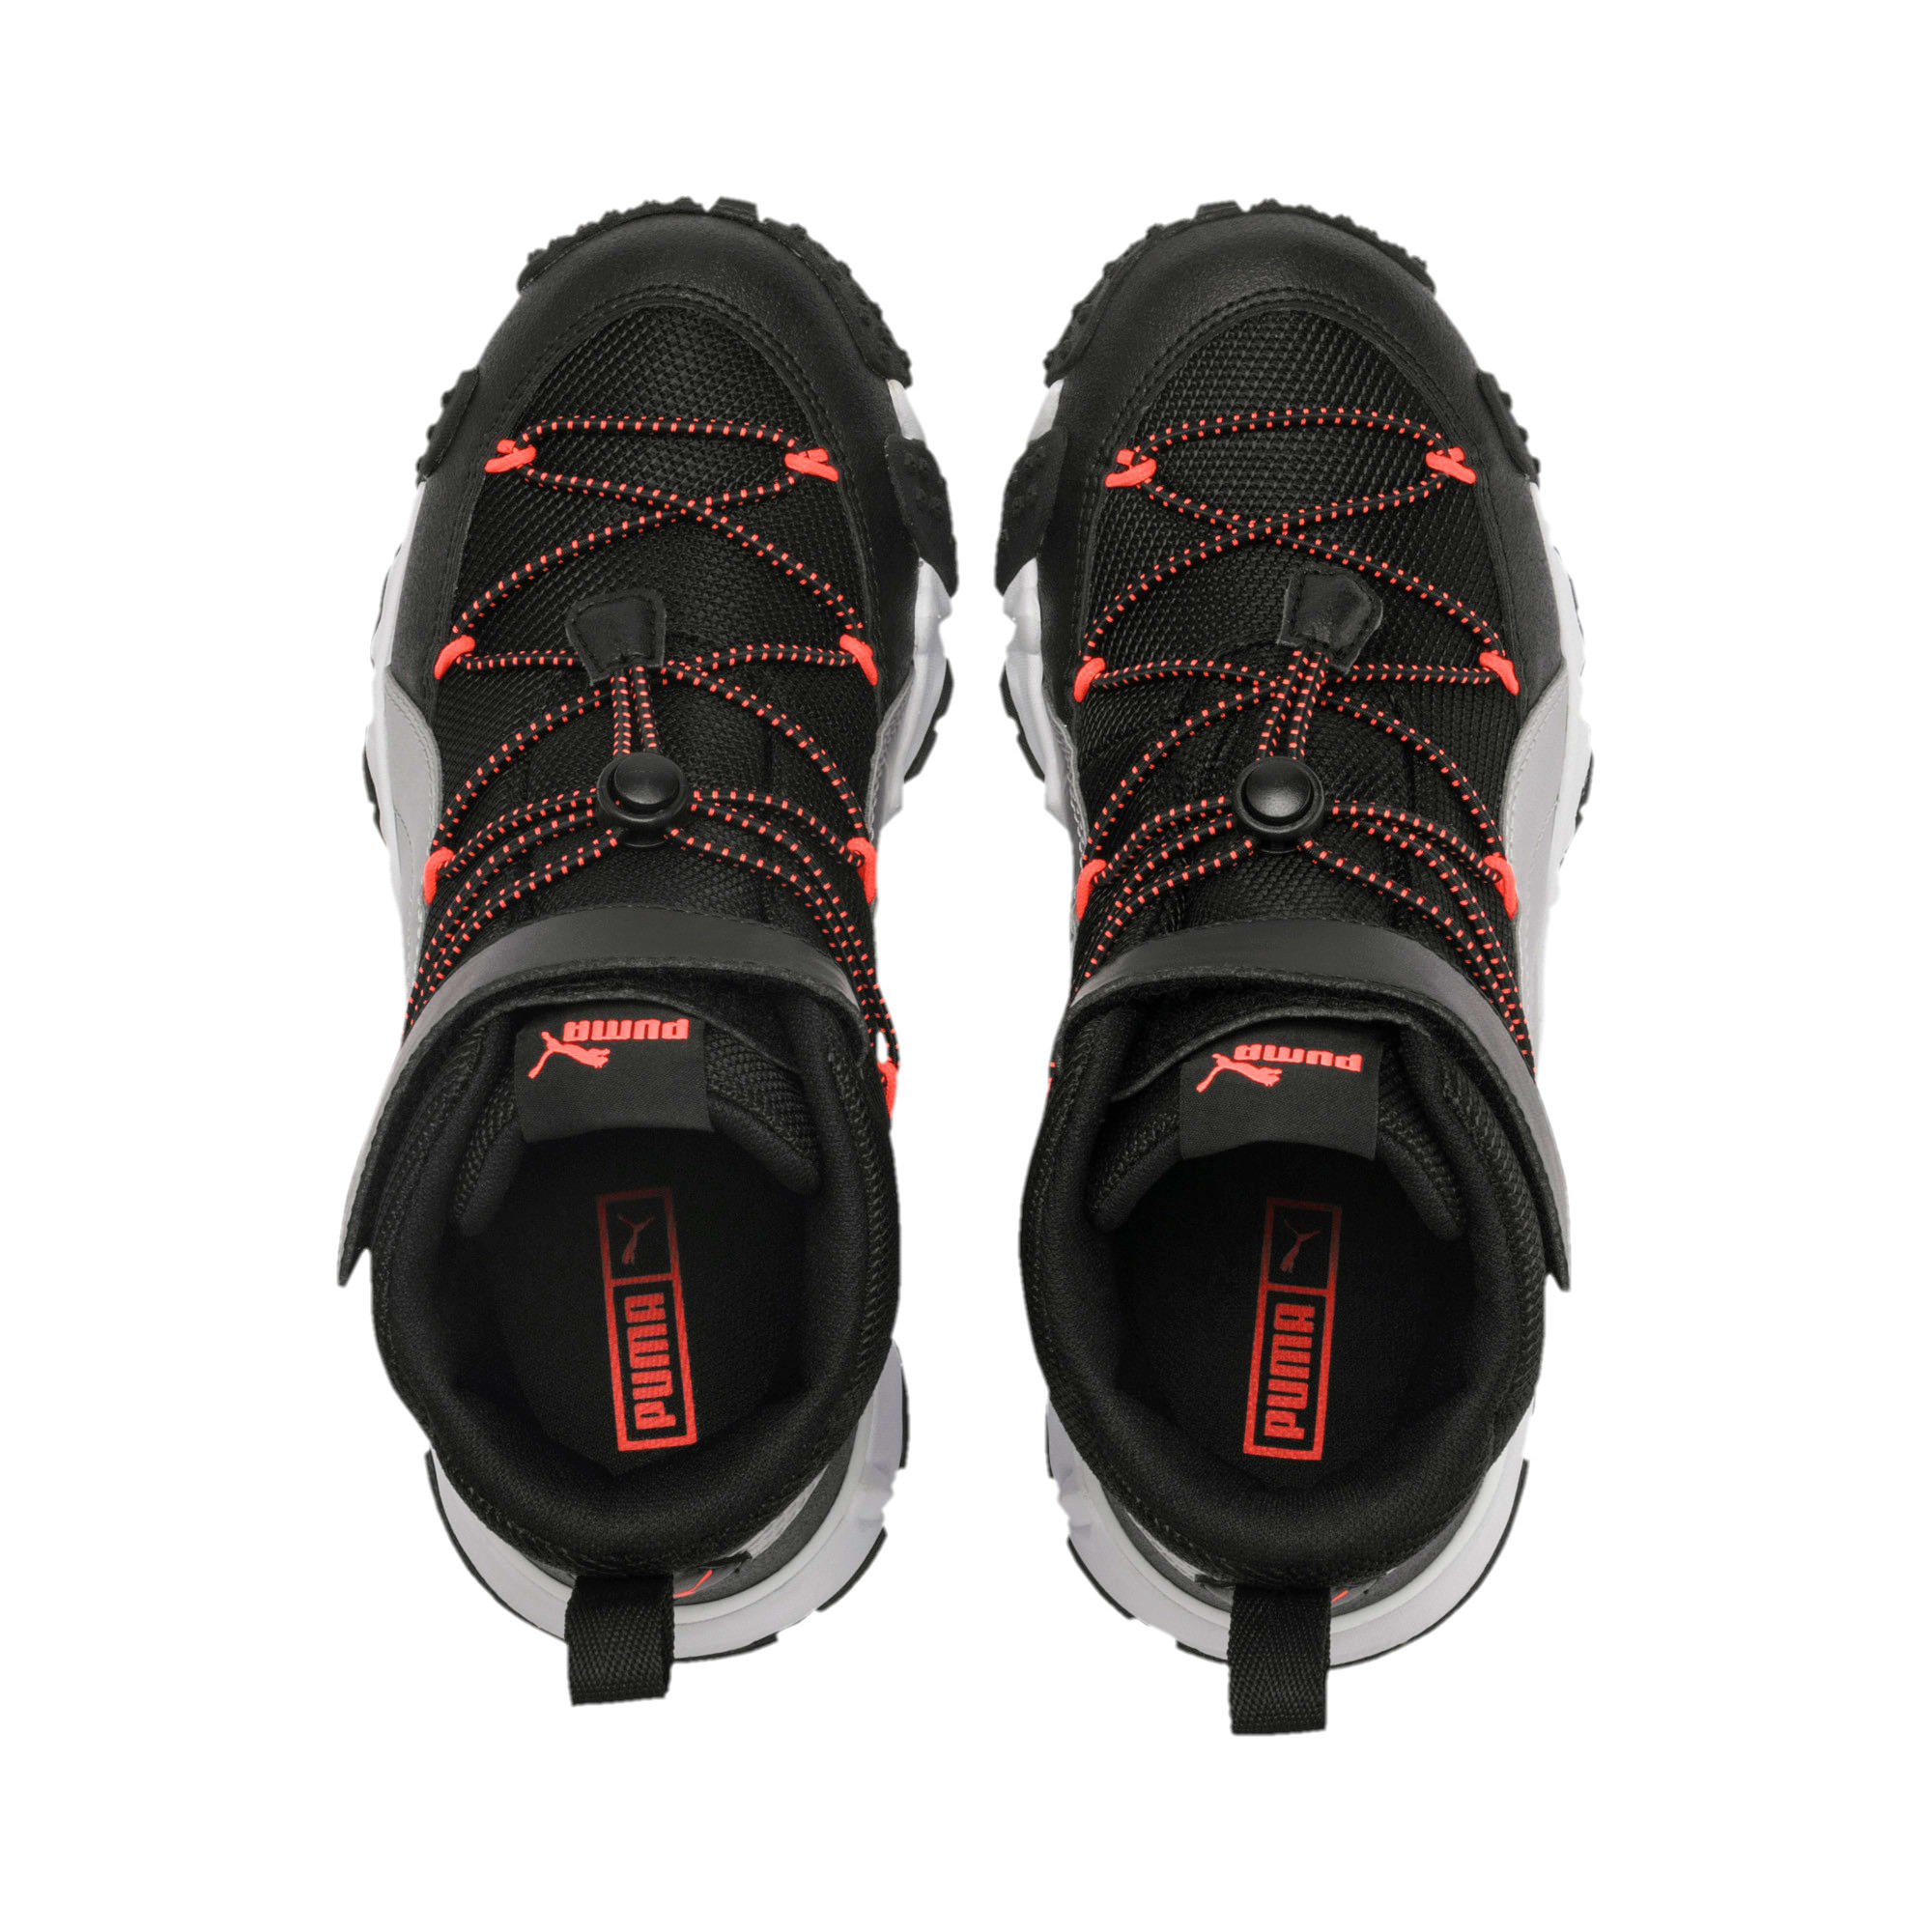 Thumbnail 6 of Maka V Youth Trainers, Puma Black-Nrgy Red, medium